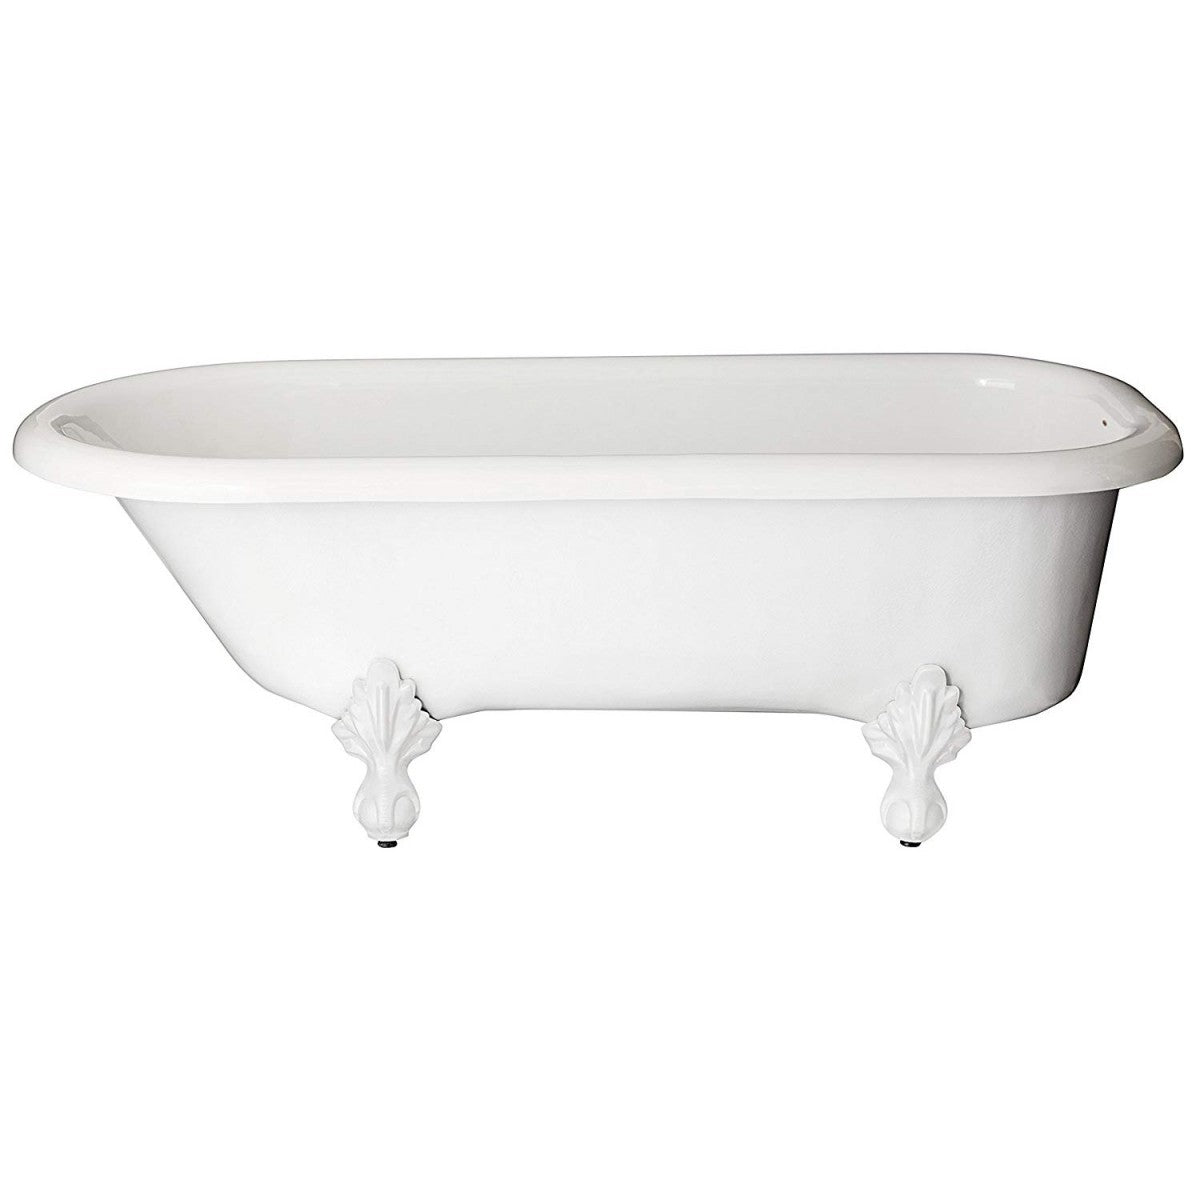 Restoria Regent Clawfoot Bathtub - Wall Faucet Drillings - 60 in